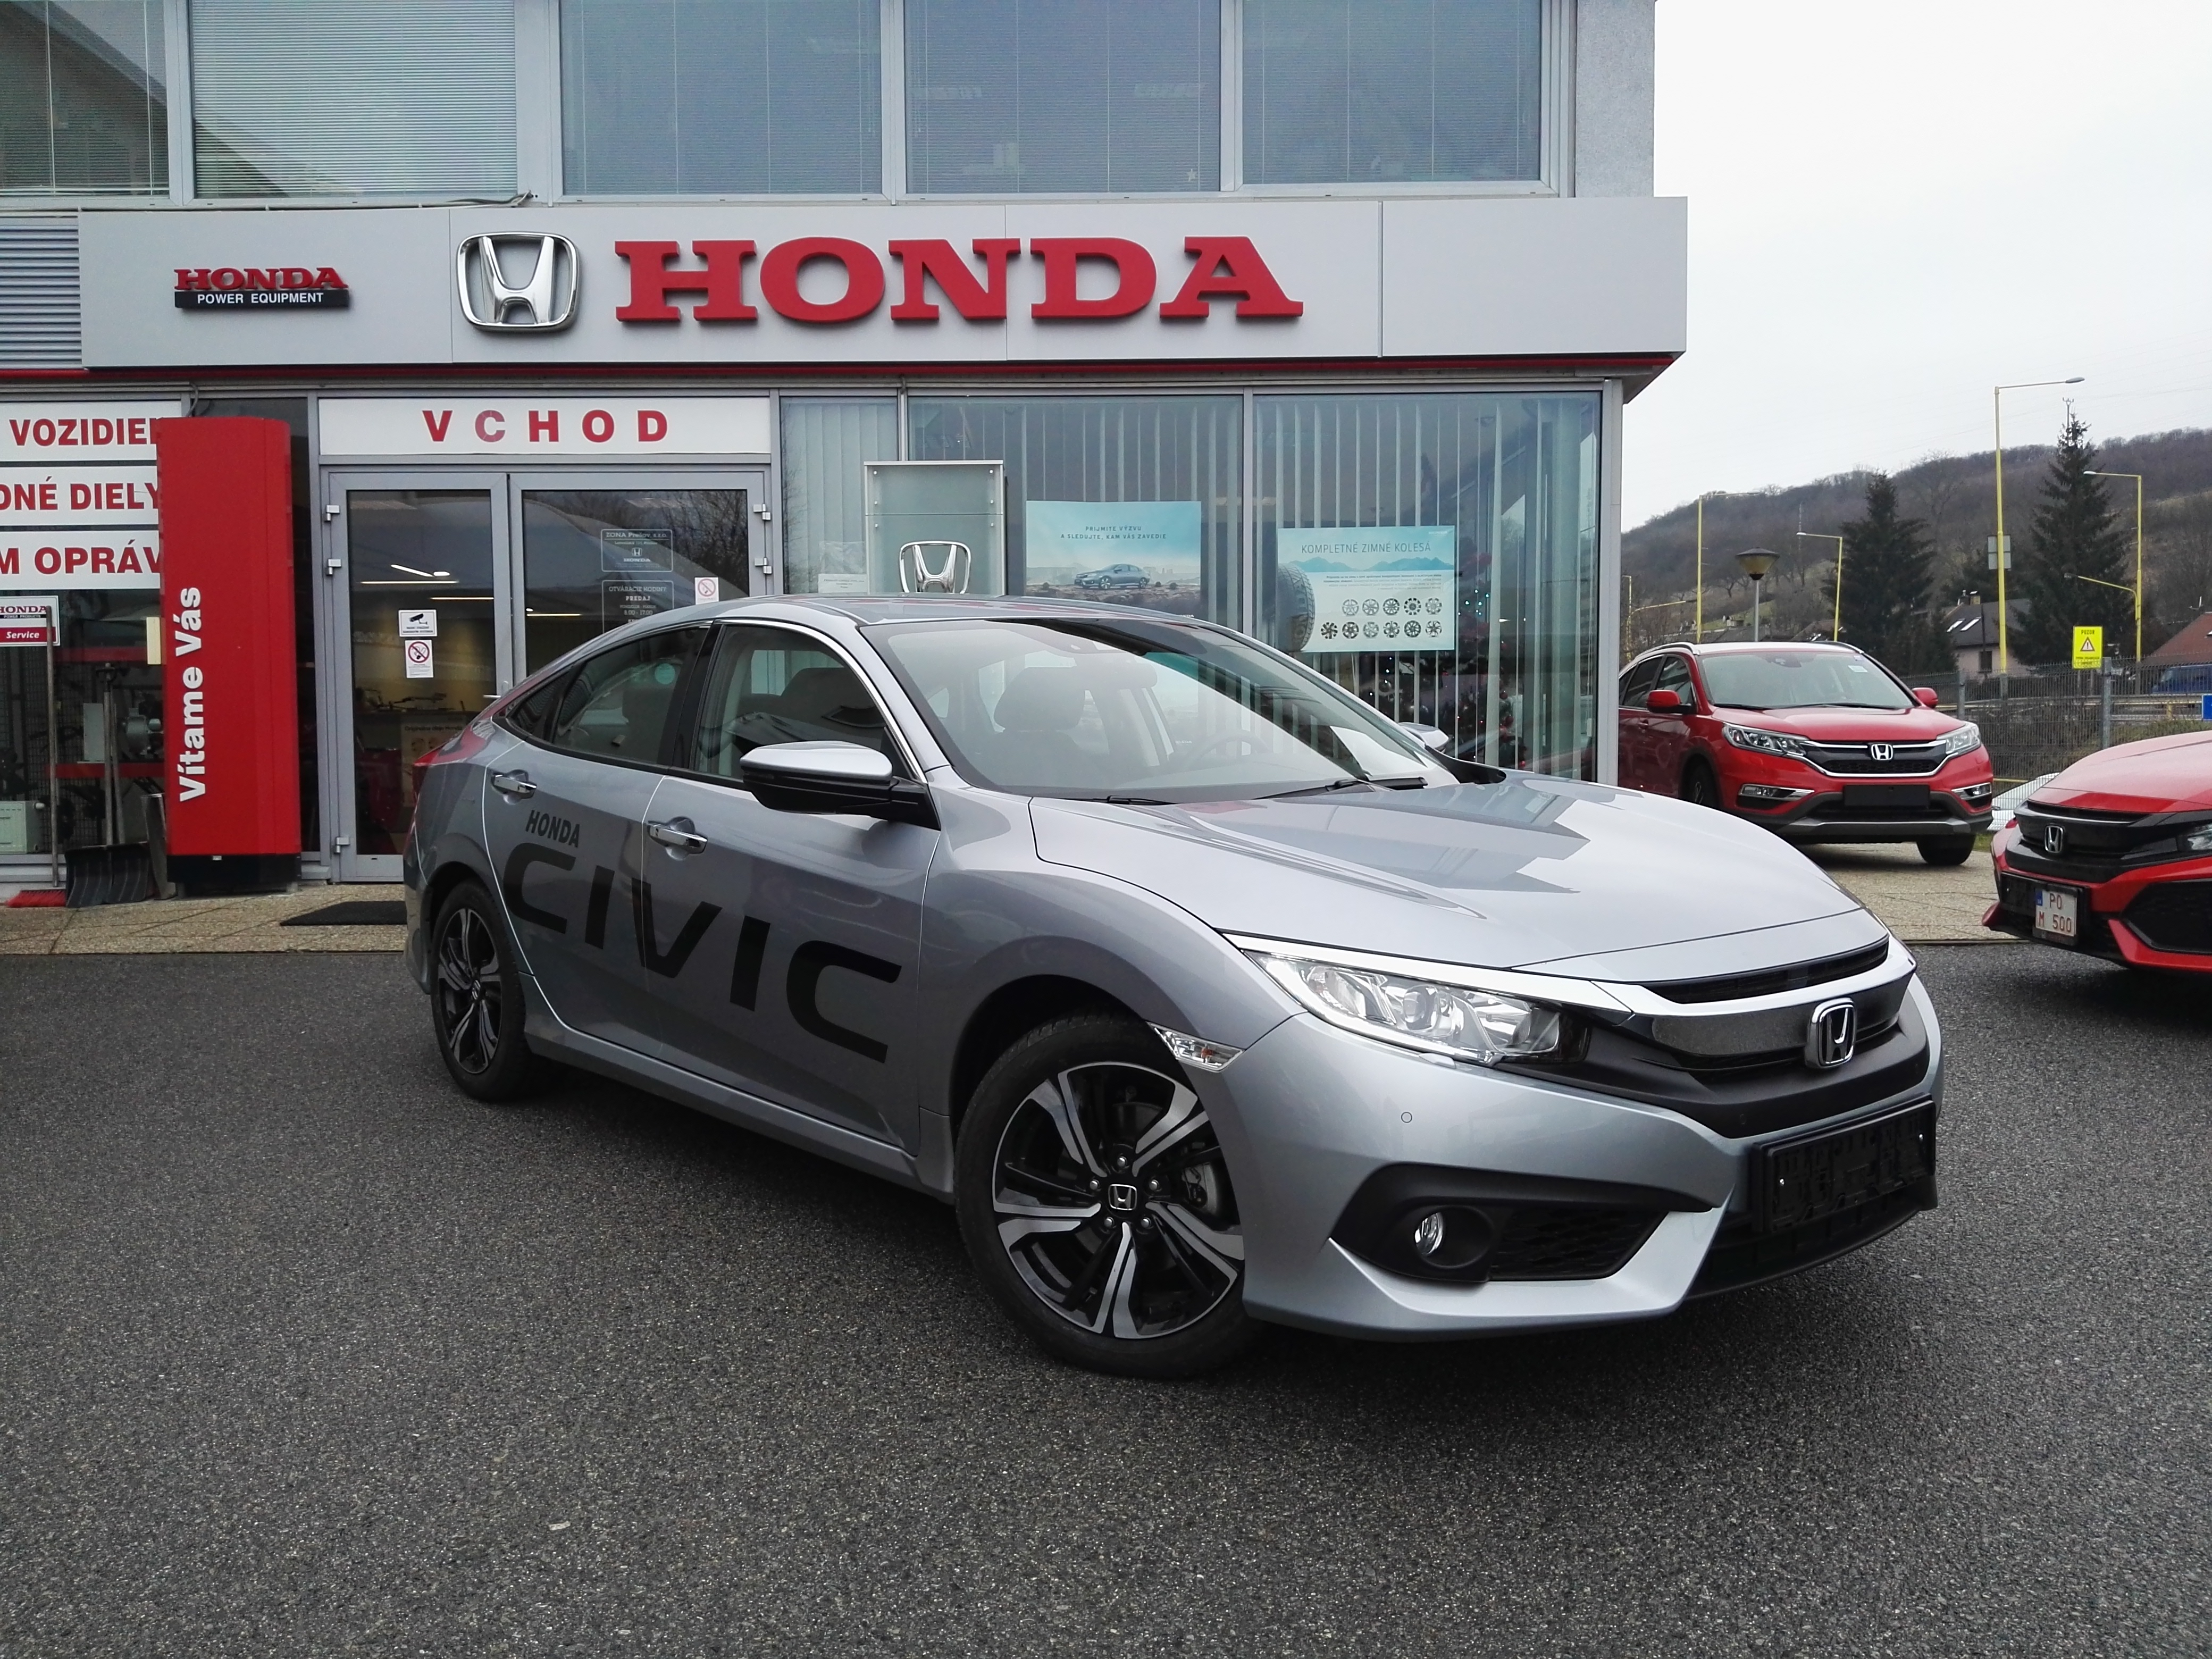 CIVIC Sedan 1,5 VTEC Turbo ELEGANCE 6MT